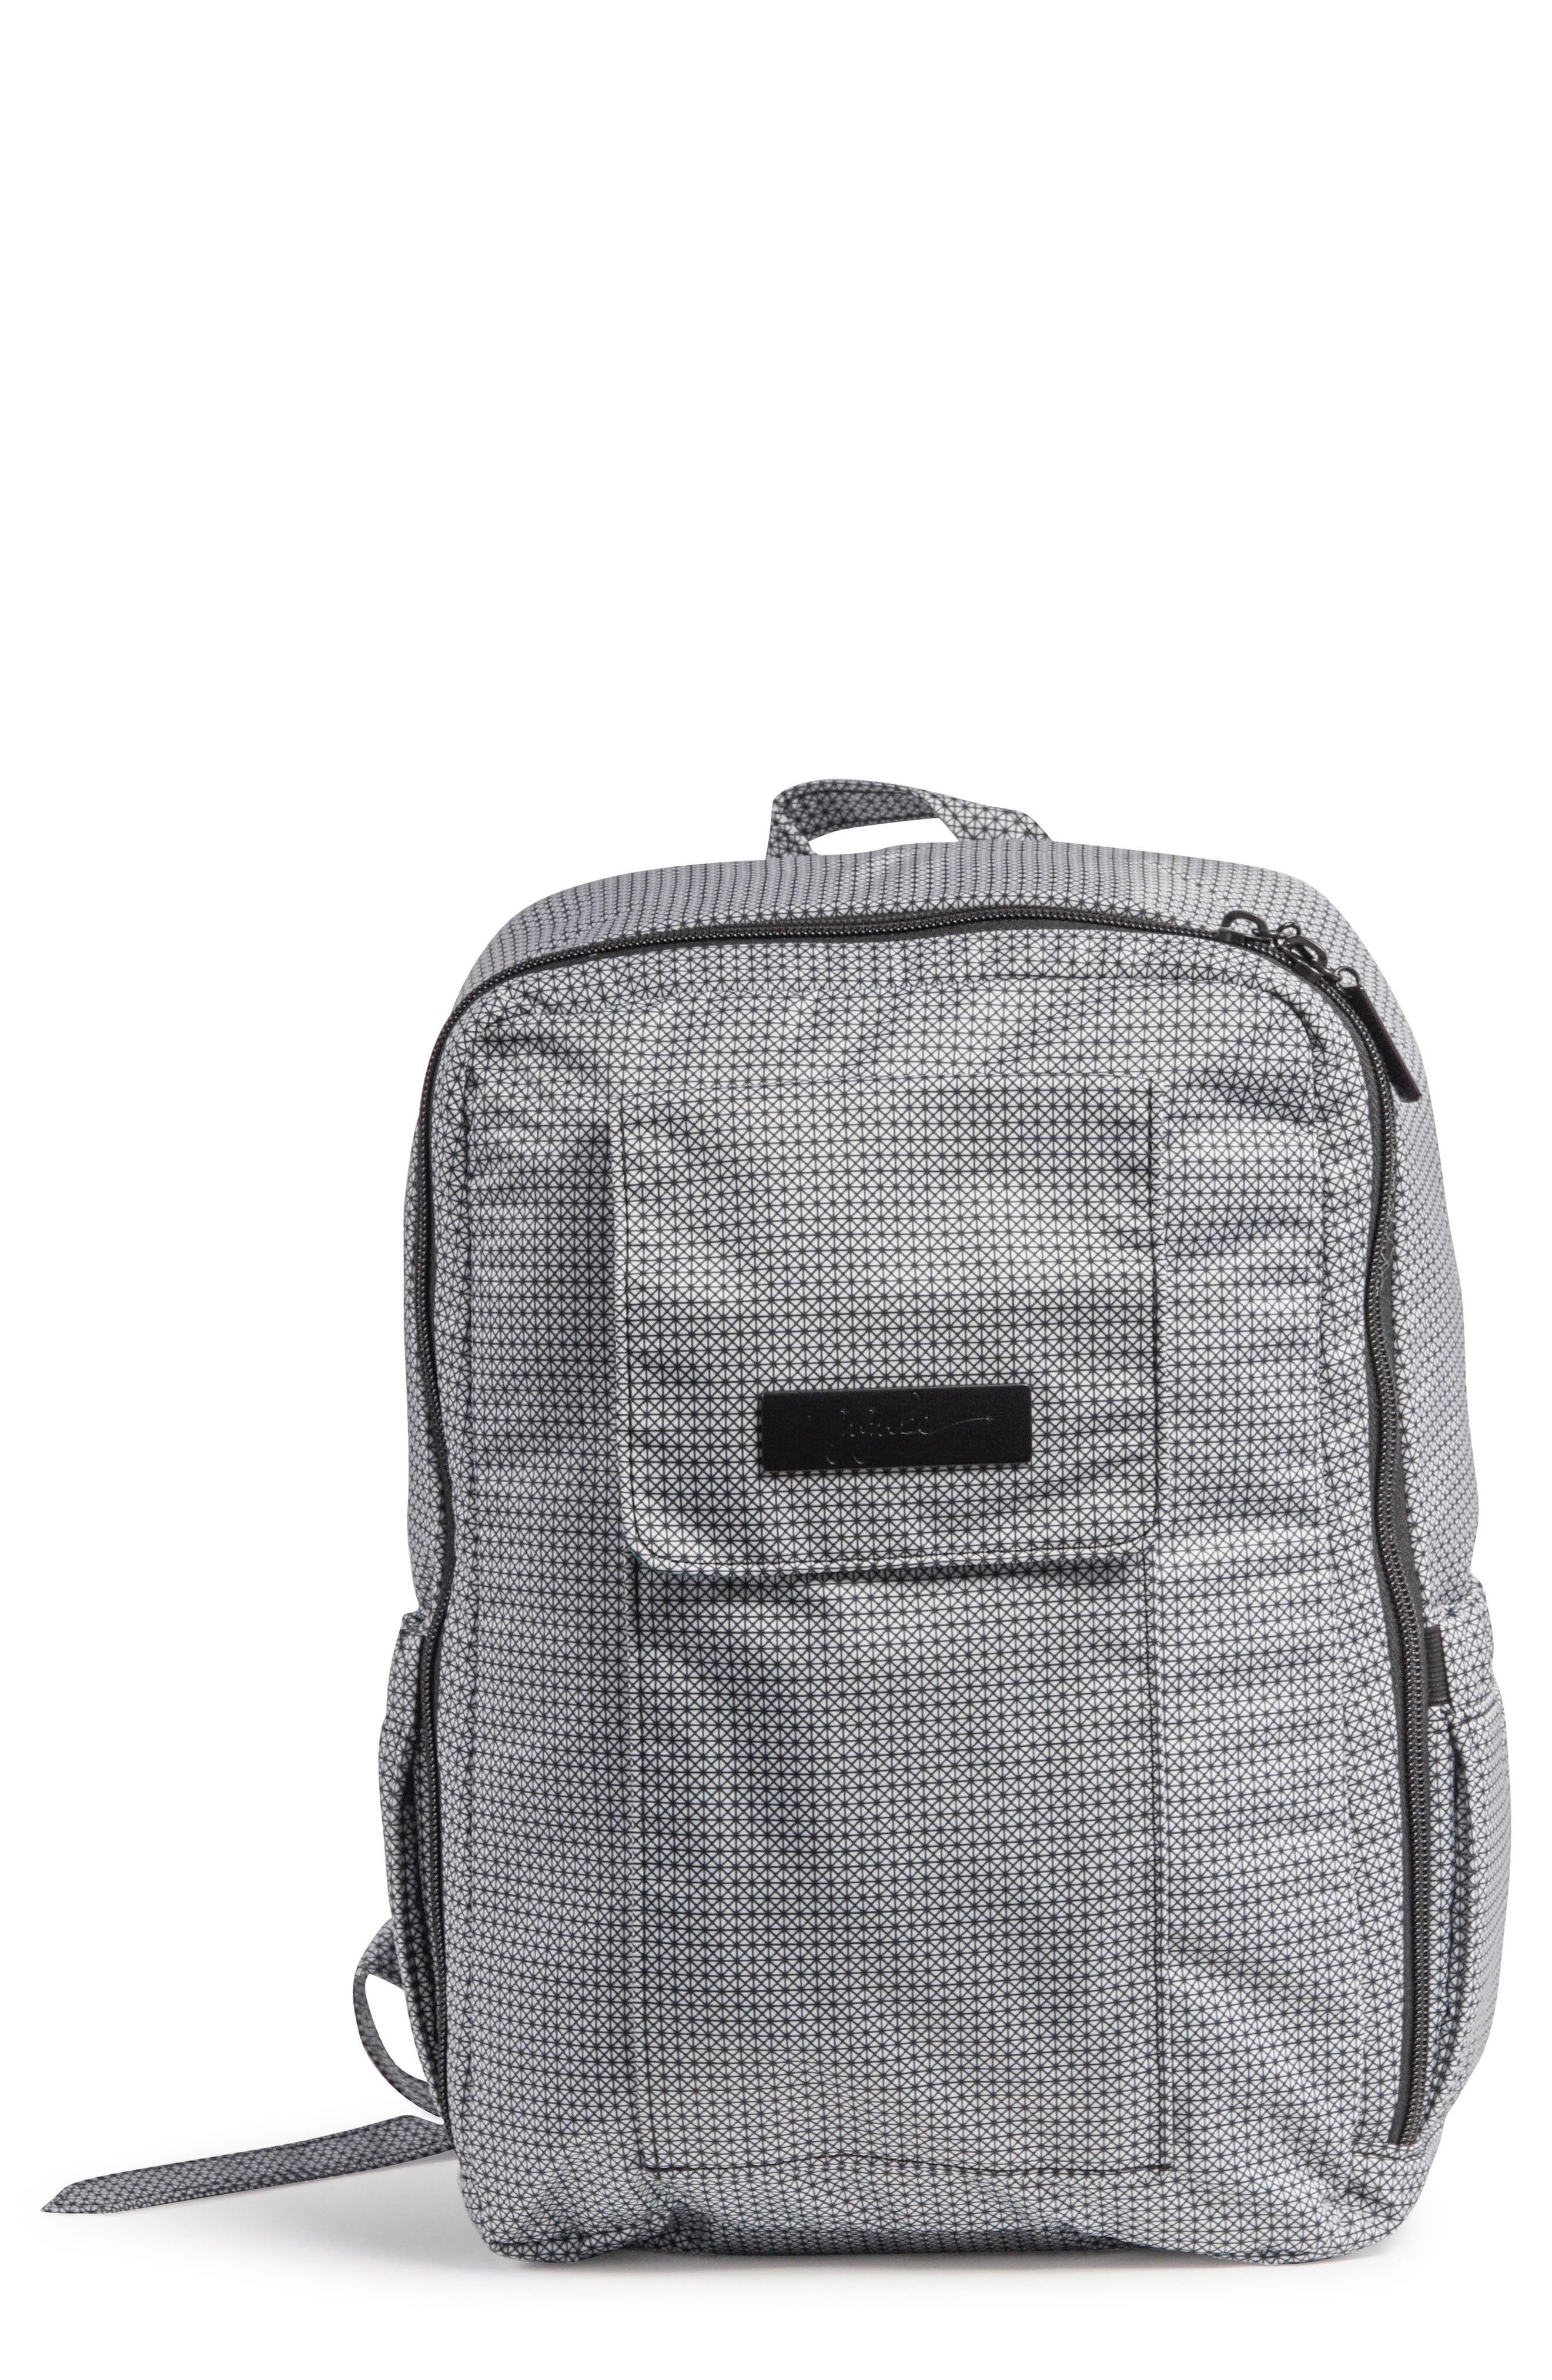 'Mini Be - Onyx Collection' Backpack,                         Main,                         color, BLACK MATRIX